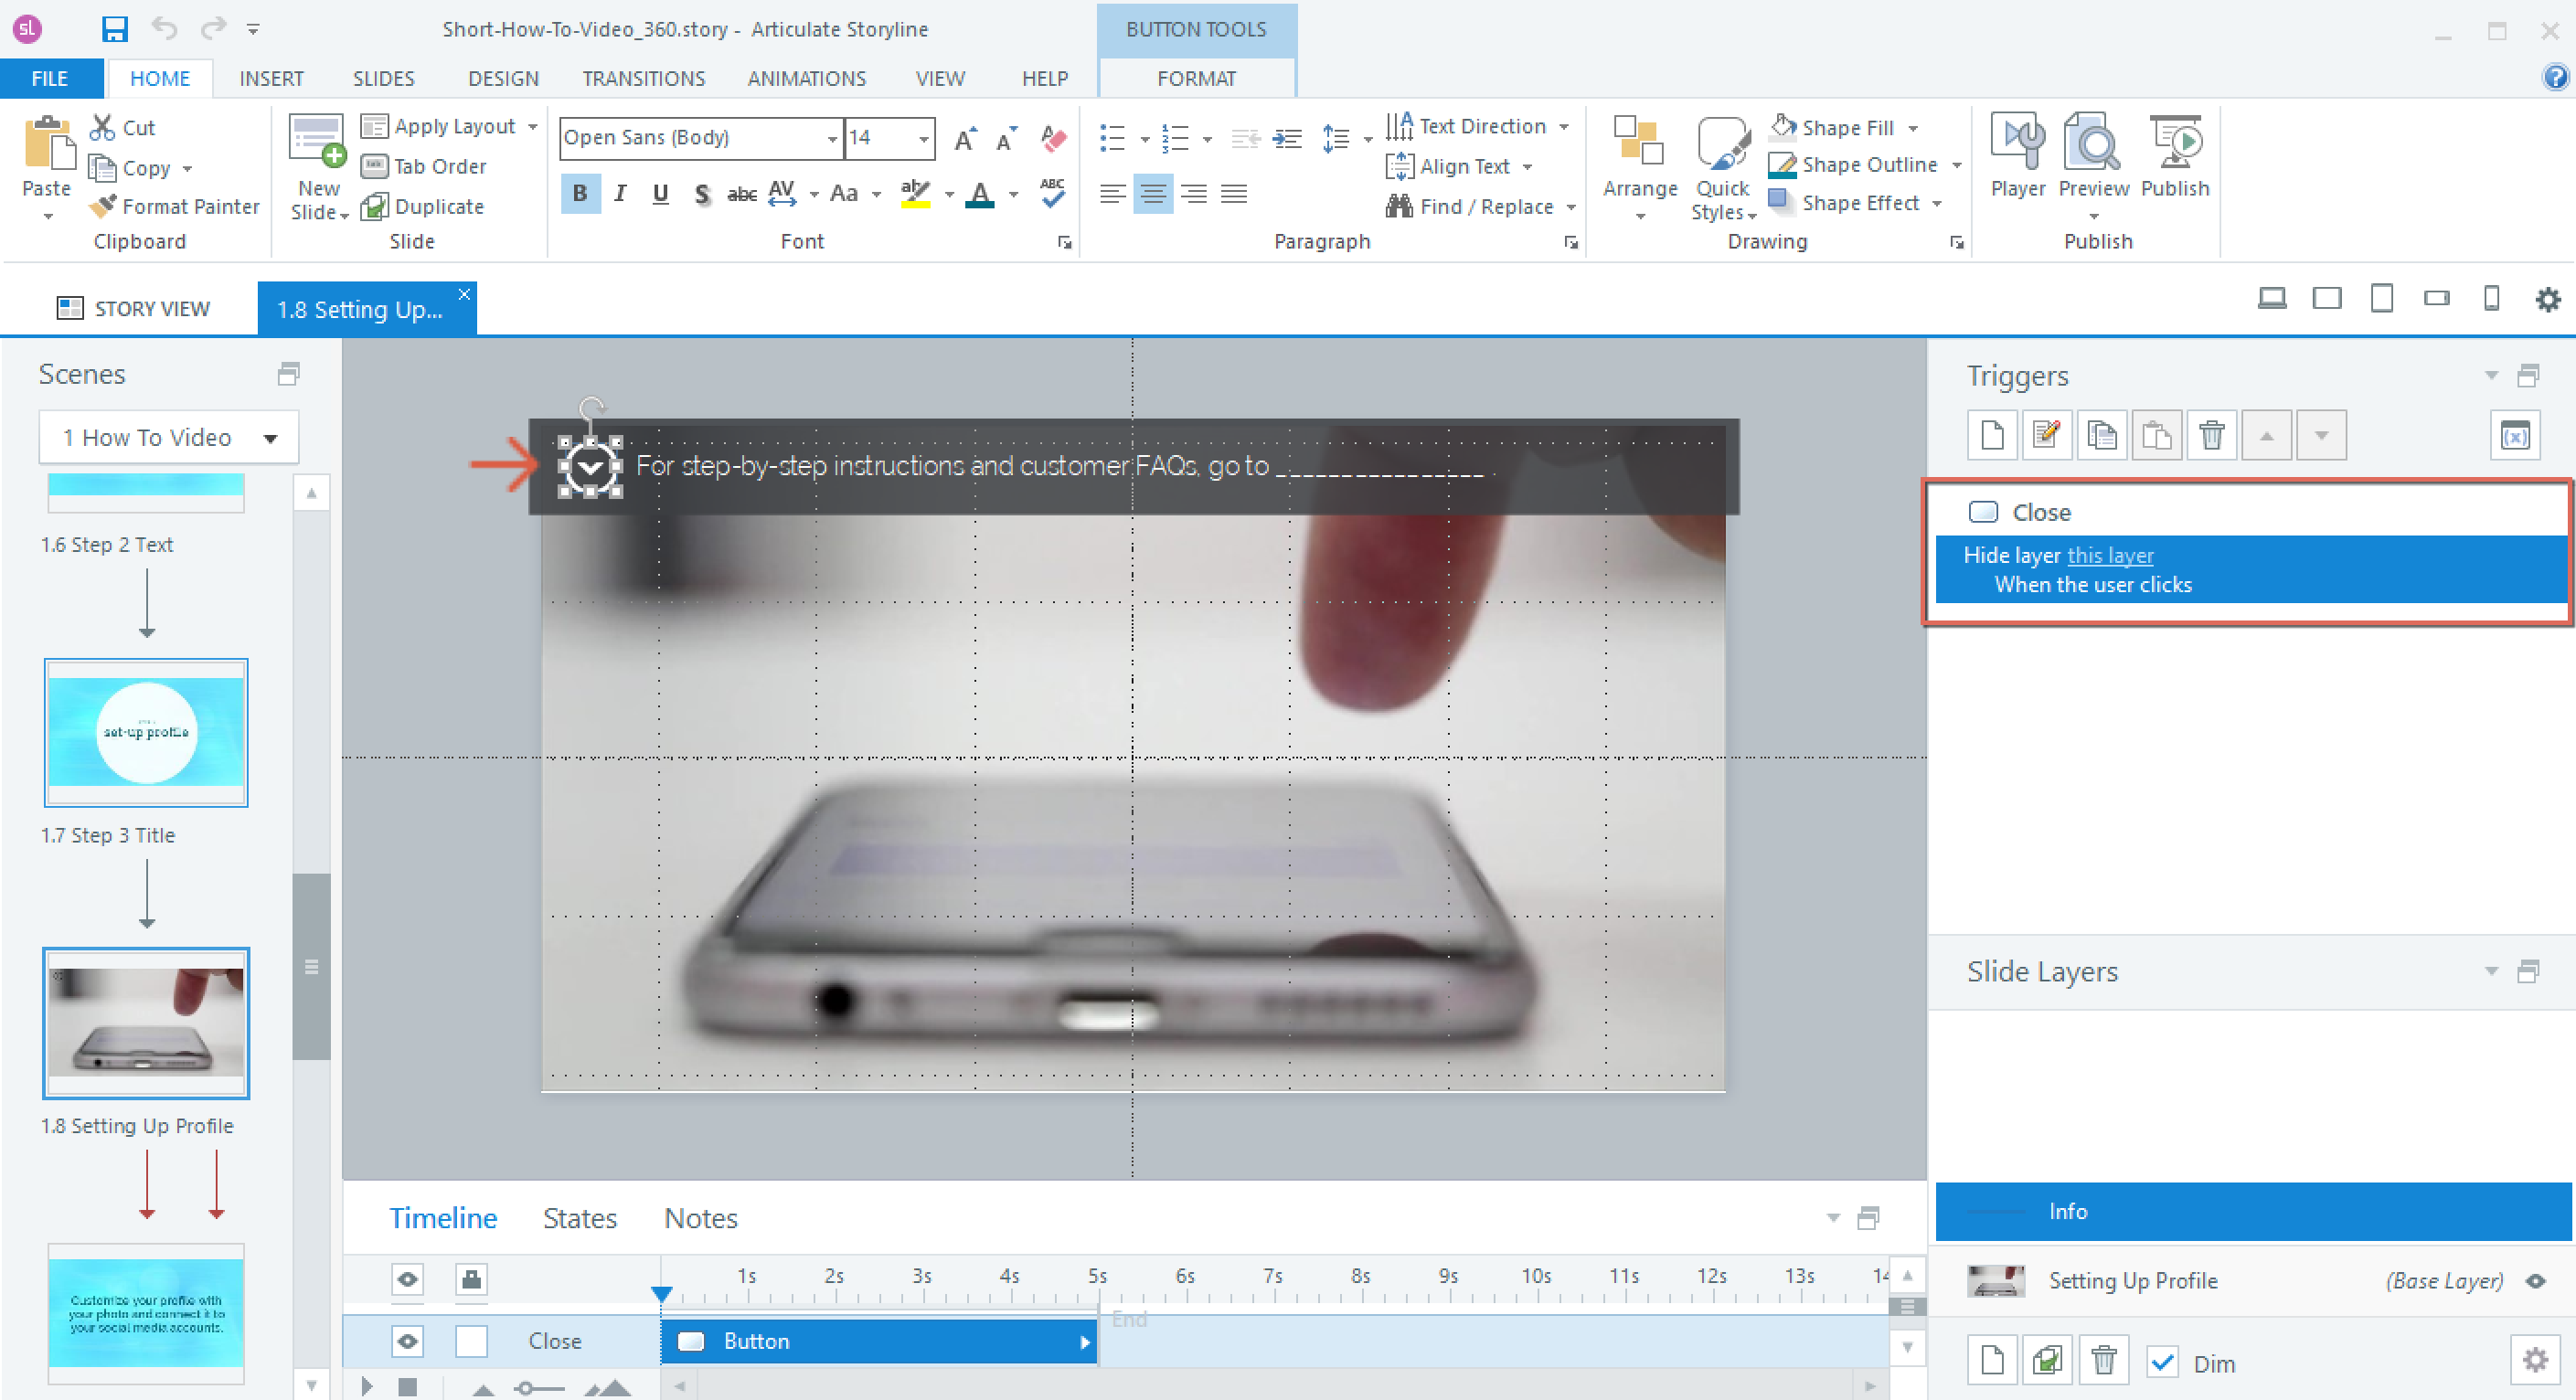 Add a trigger to a layer in Articulate Storyline 360